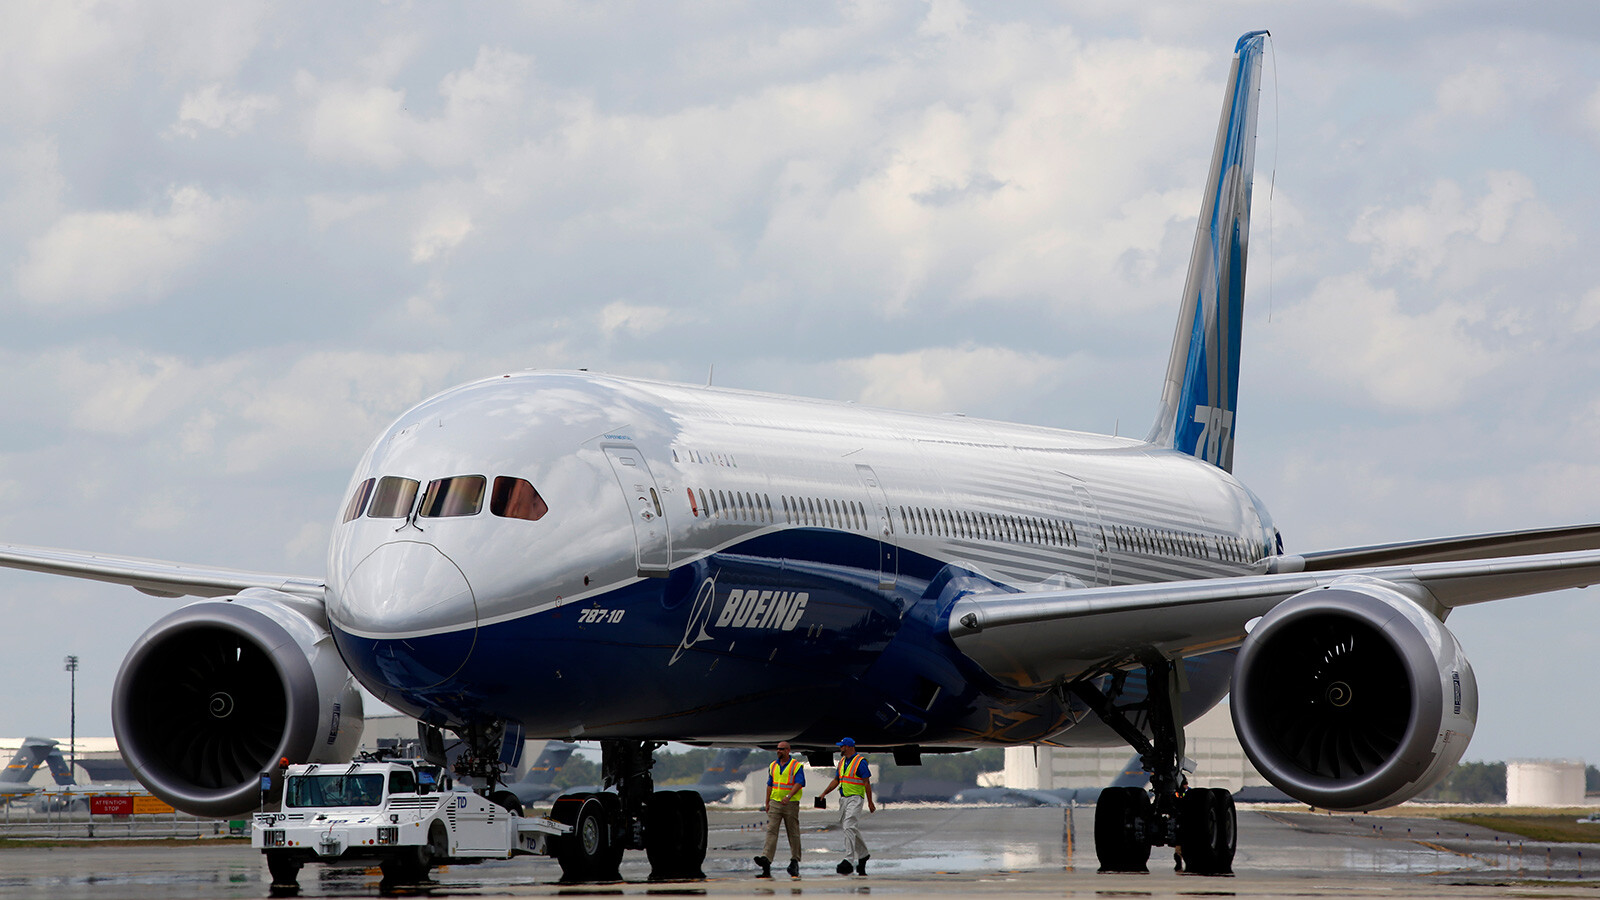 Boeing discloses a new problem with the 787 Dreamliner